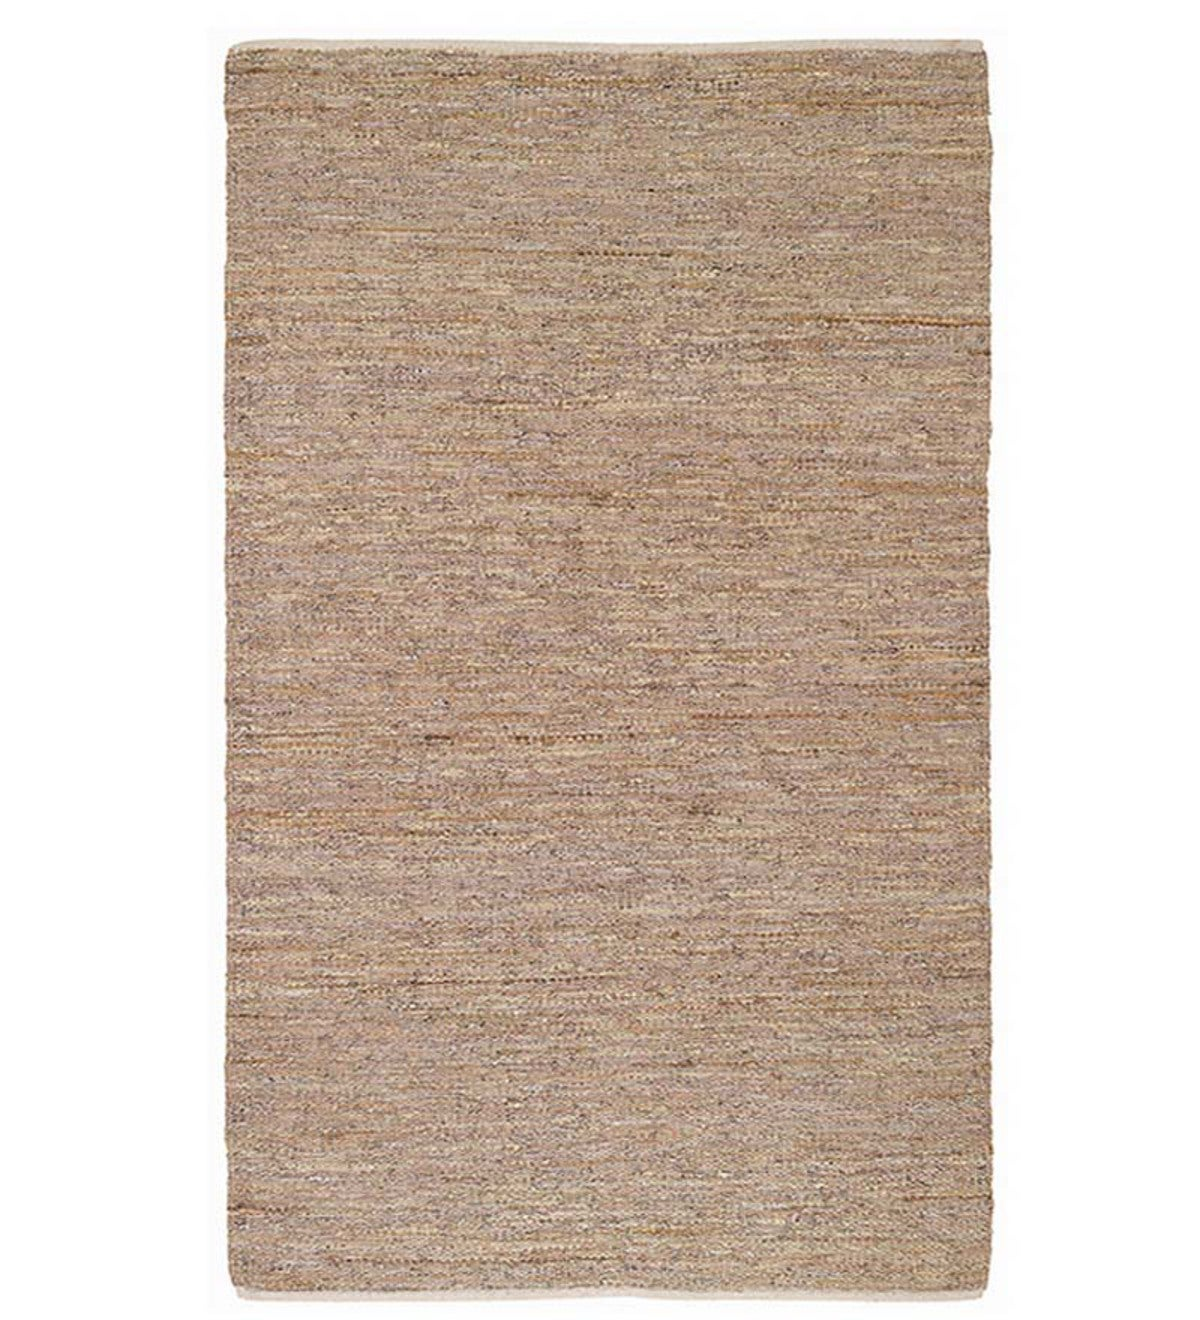 Lariat Recycled Leather Rug, 3' x 5'